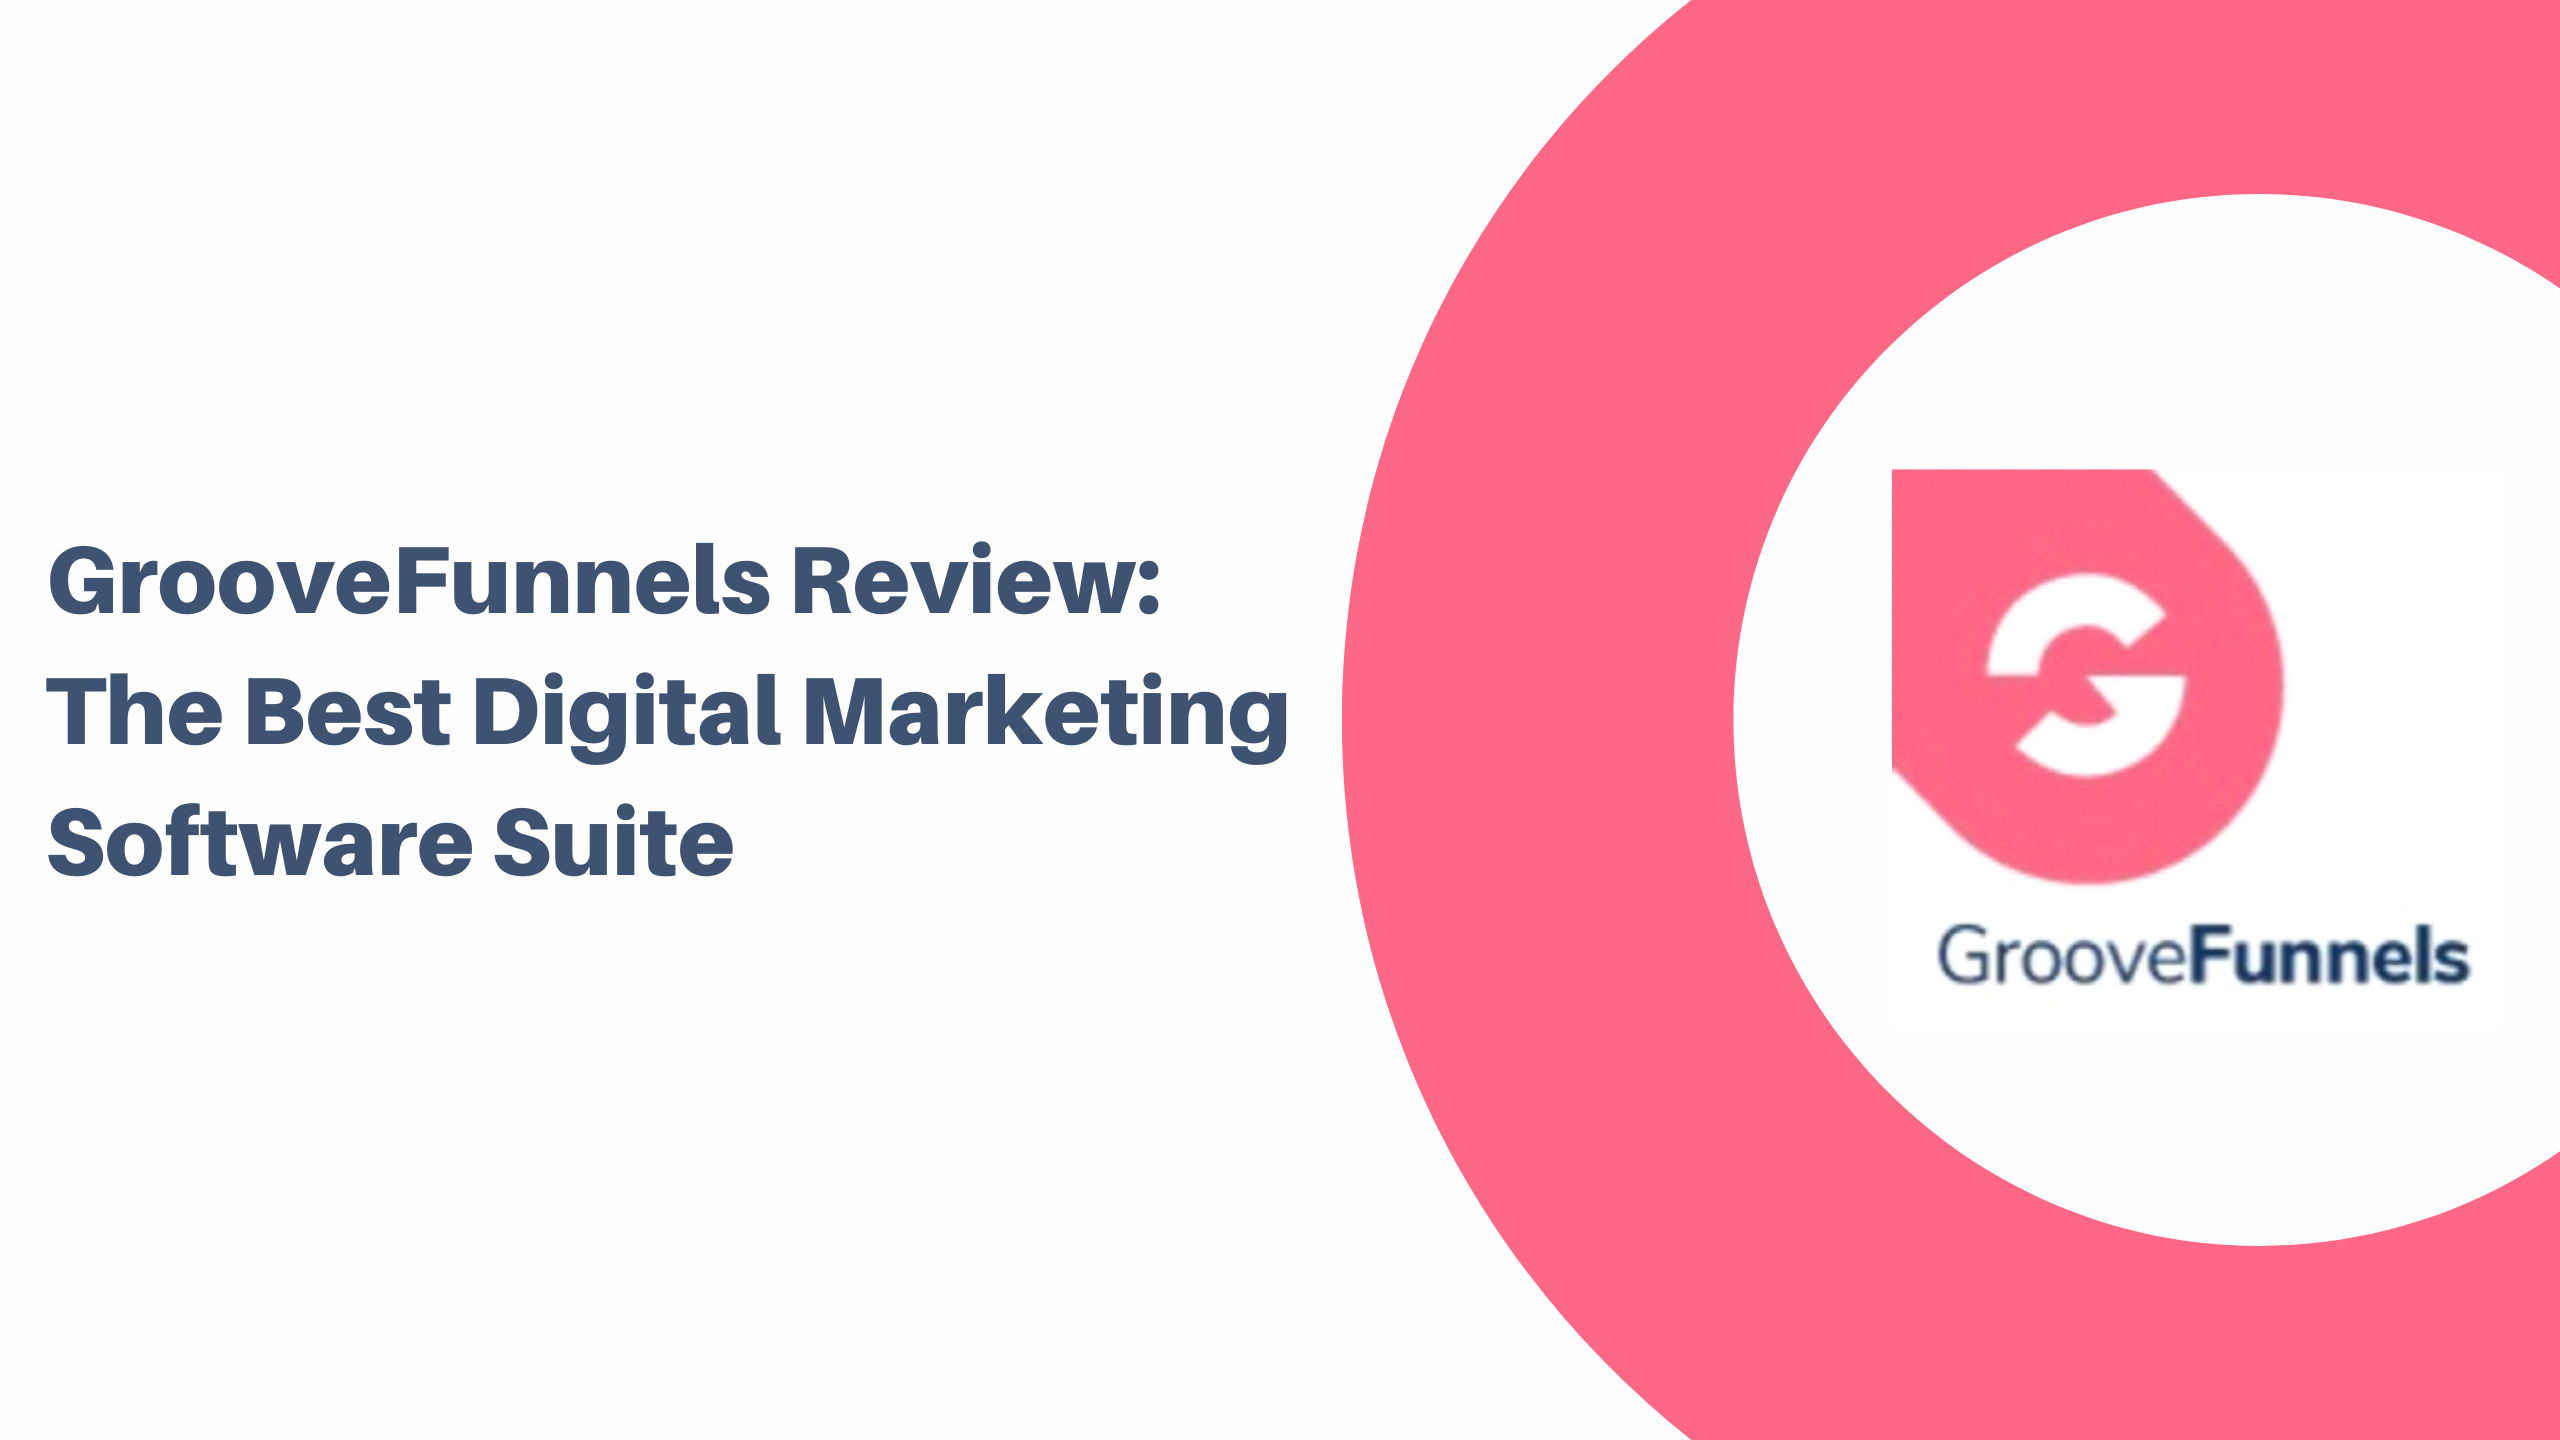 GrooveFunnels Review The Best Digital Marketing Software Suite